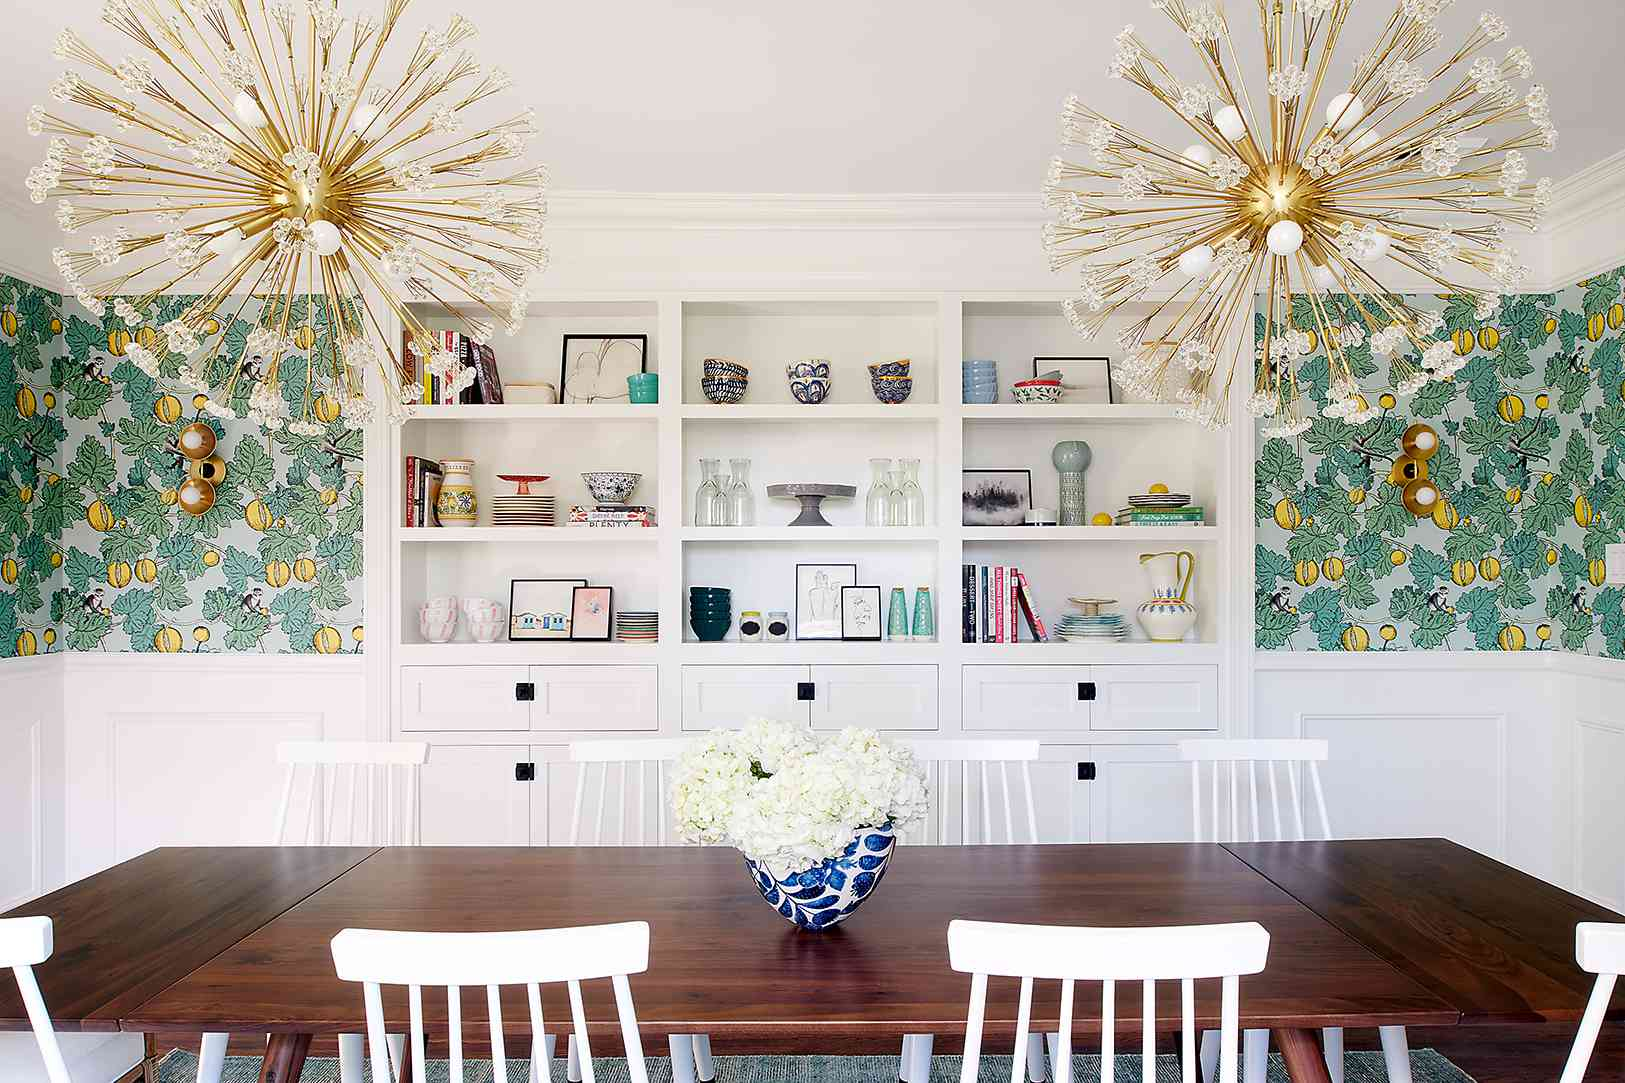 Dining room with bright wallpaper and orb lighting.